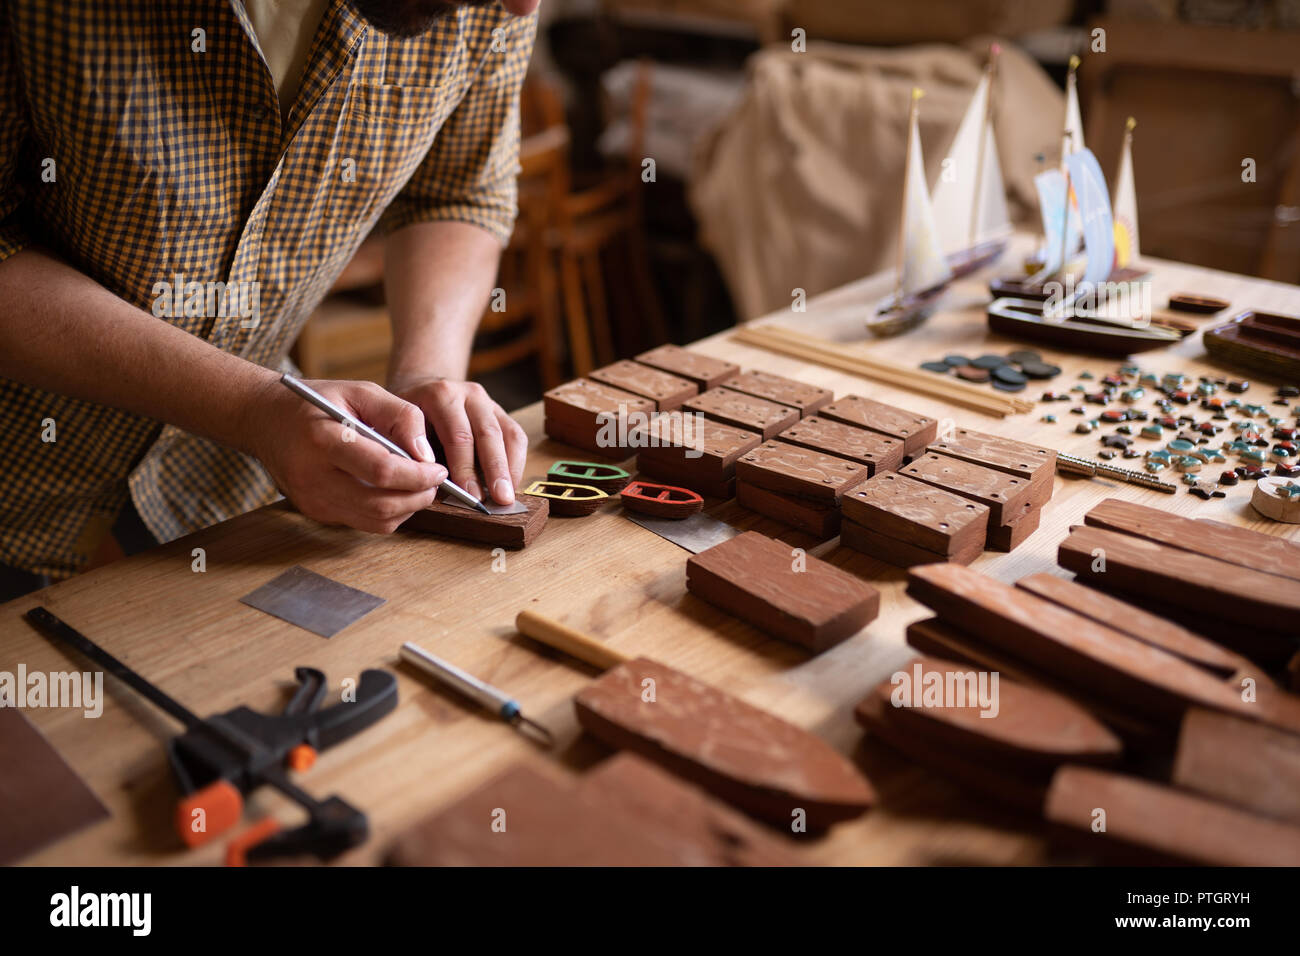 A close-up view of a joiner using a pencil to cope a shape of boat on wood. - Stock Image